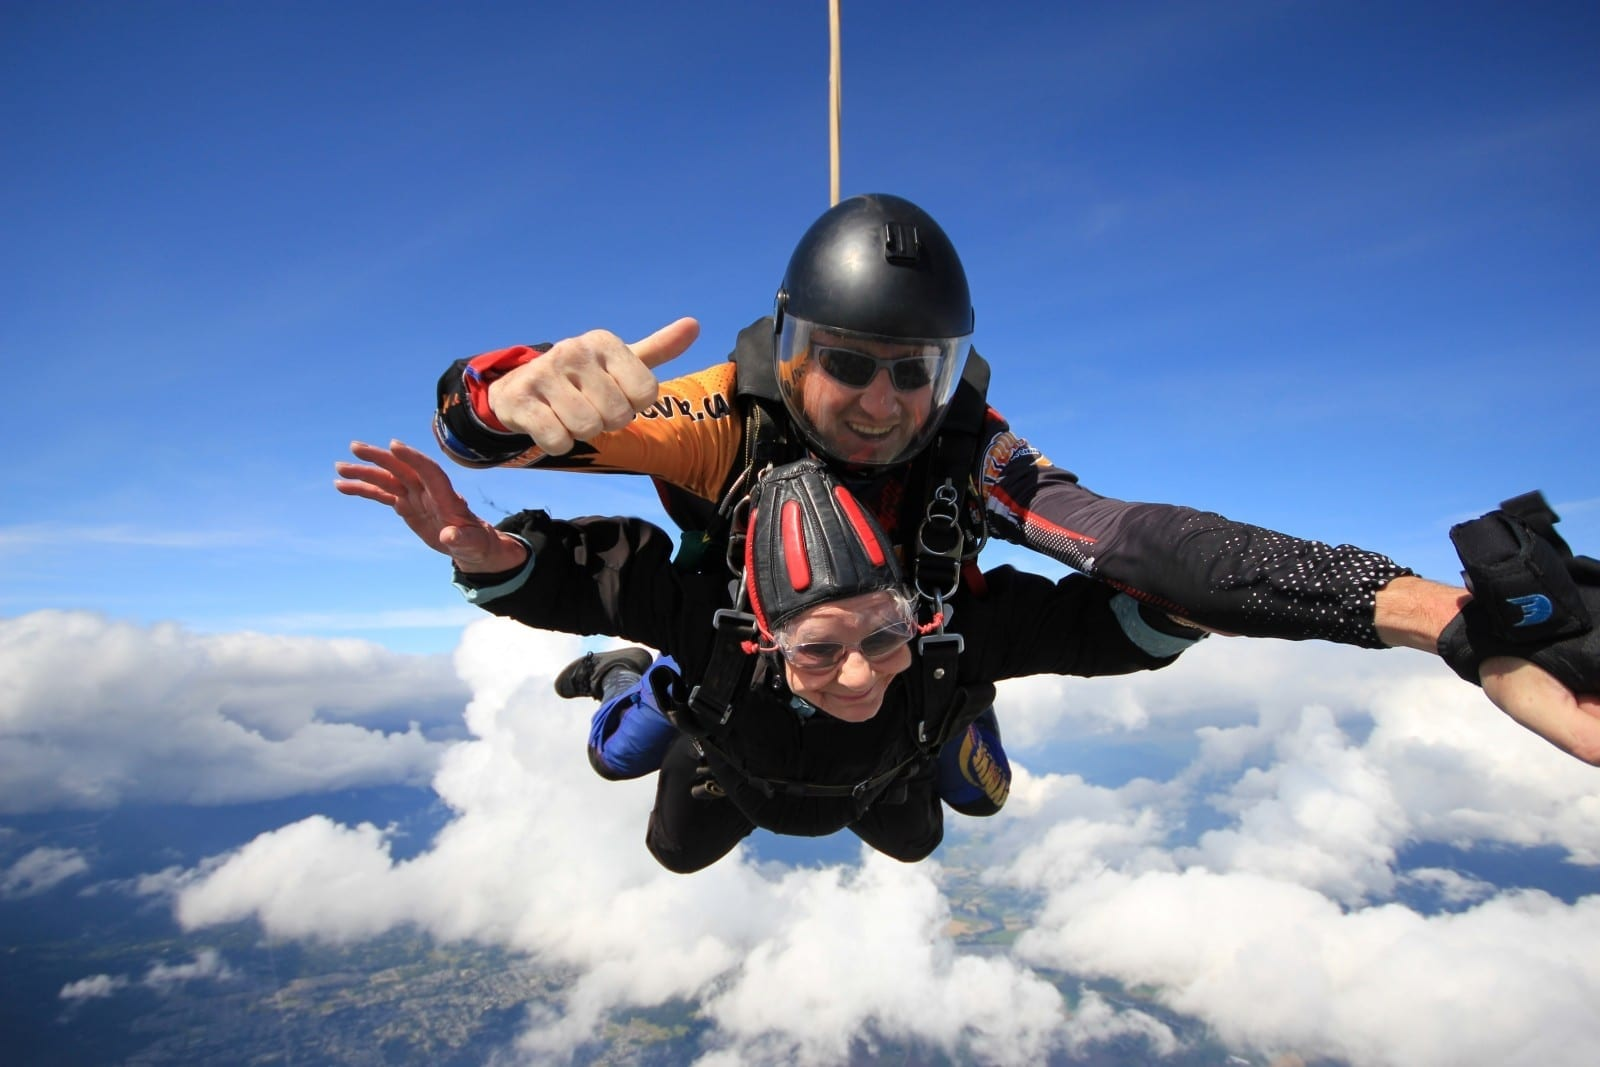 Brave Senior Celebrates 90th Birthday With Daring SKYDIVE